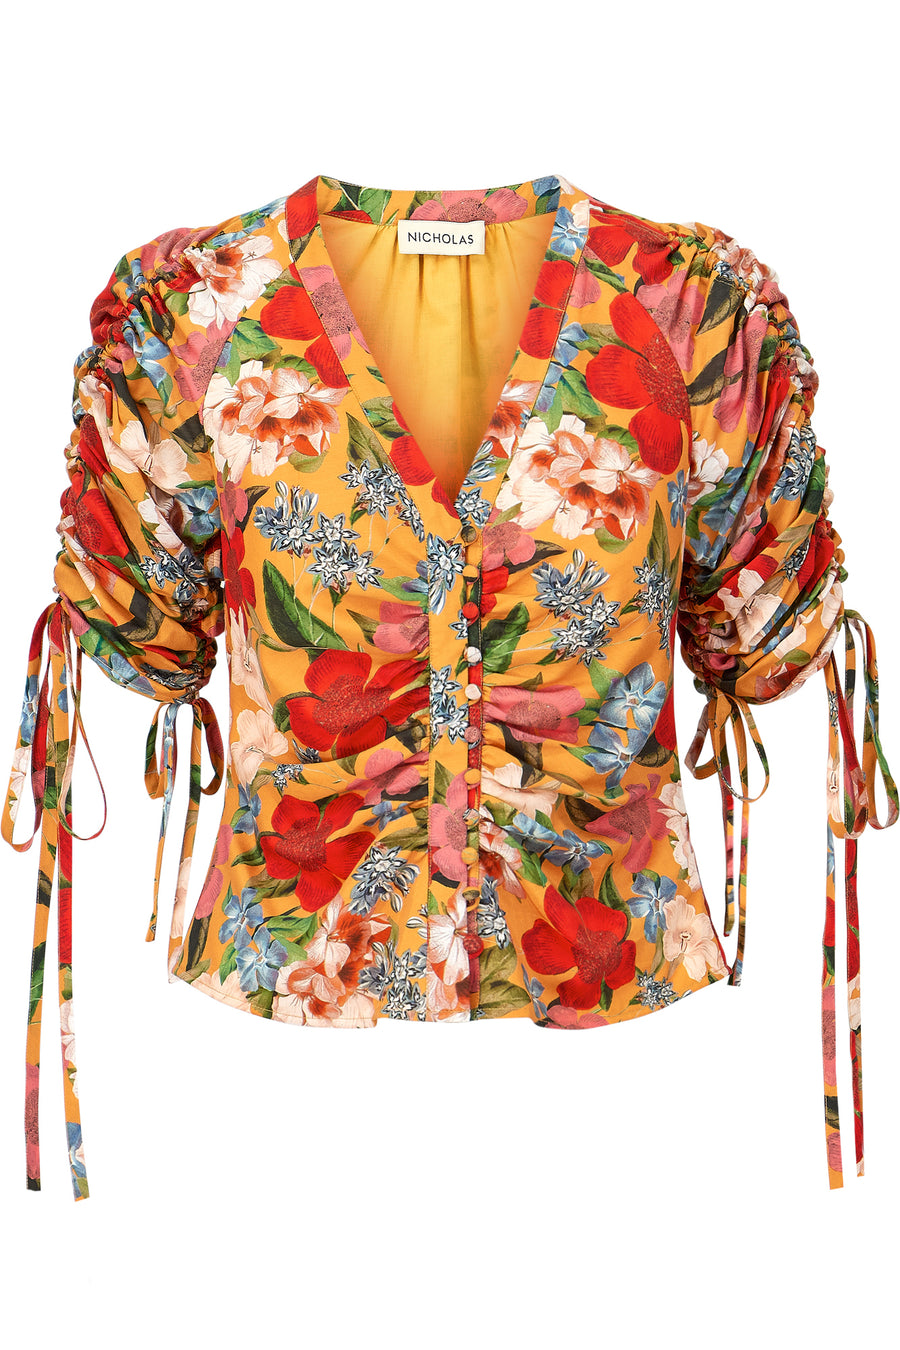 Gathered Sleeve Blouse - Tangerine Multi